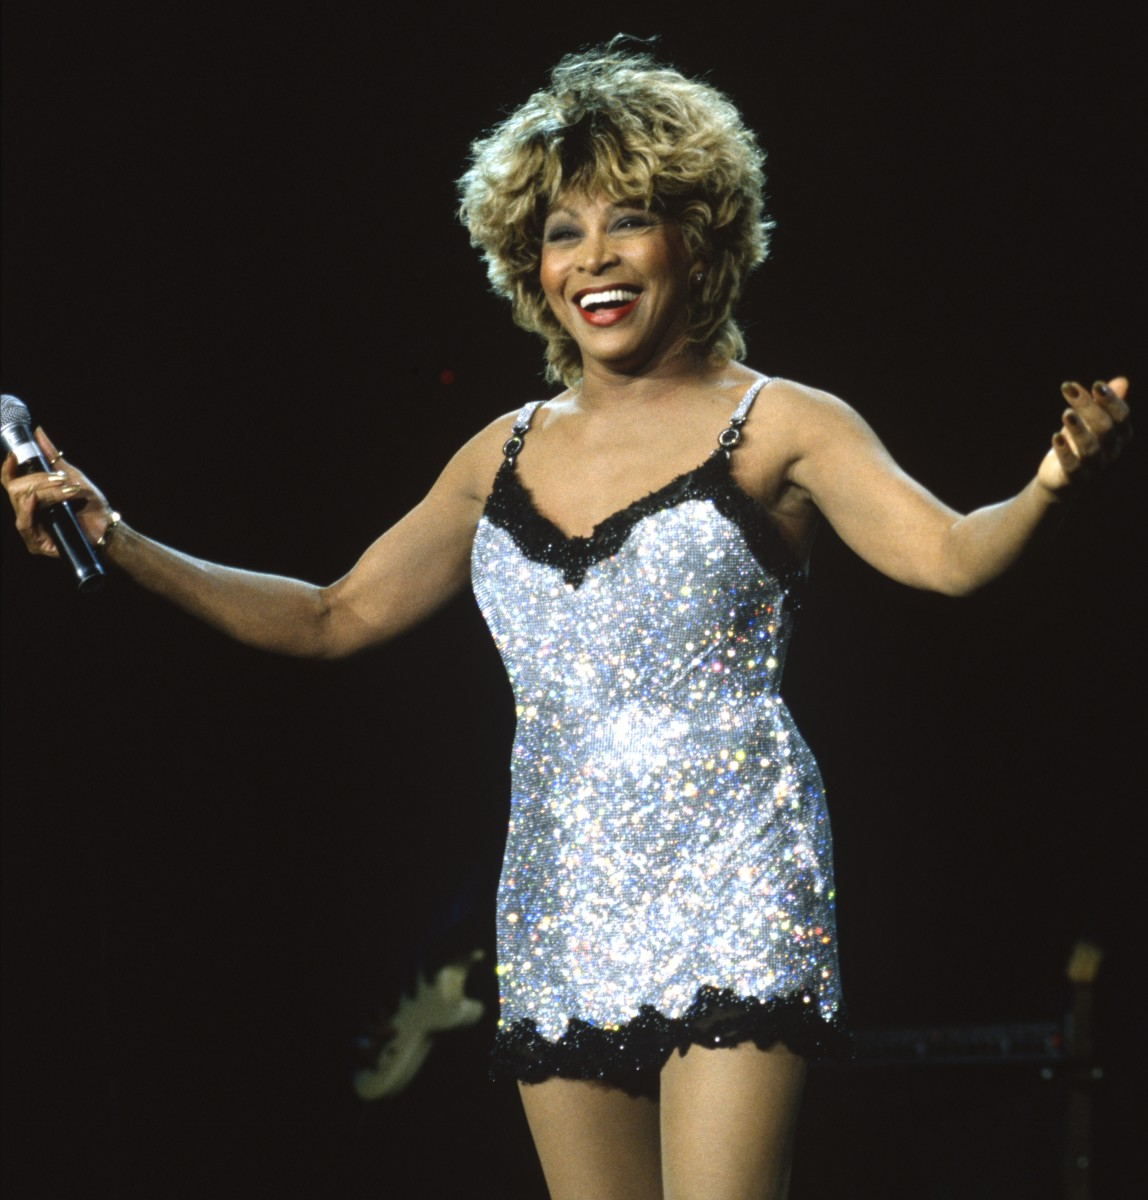 Tina Turner performs at Shoreline Amphitheatre on May 23, 1997 in Mountain View California